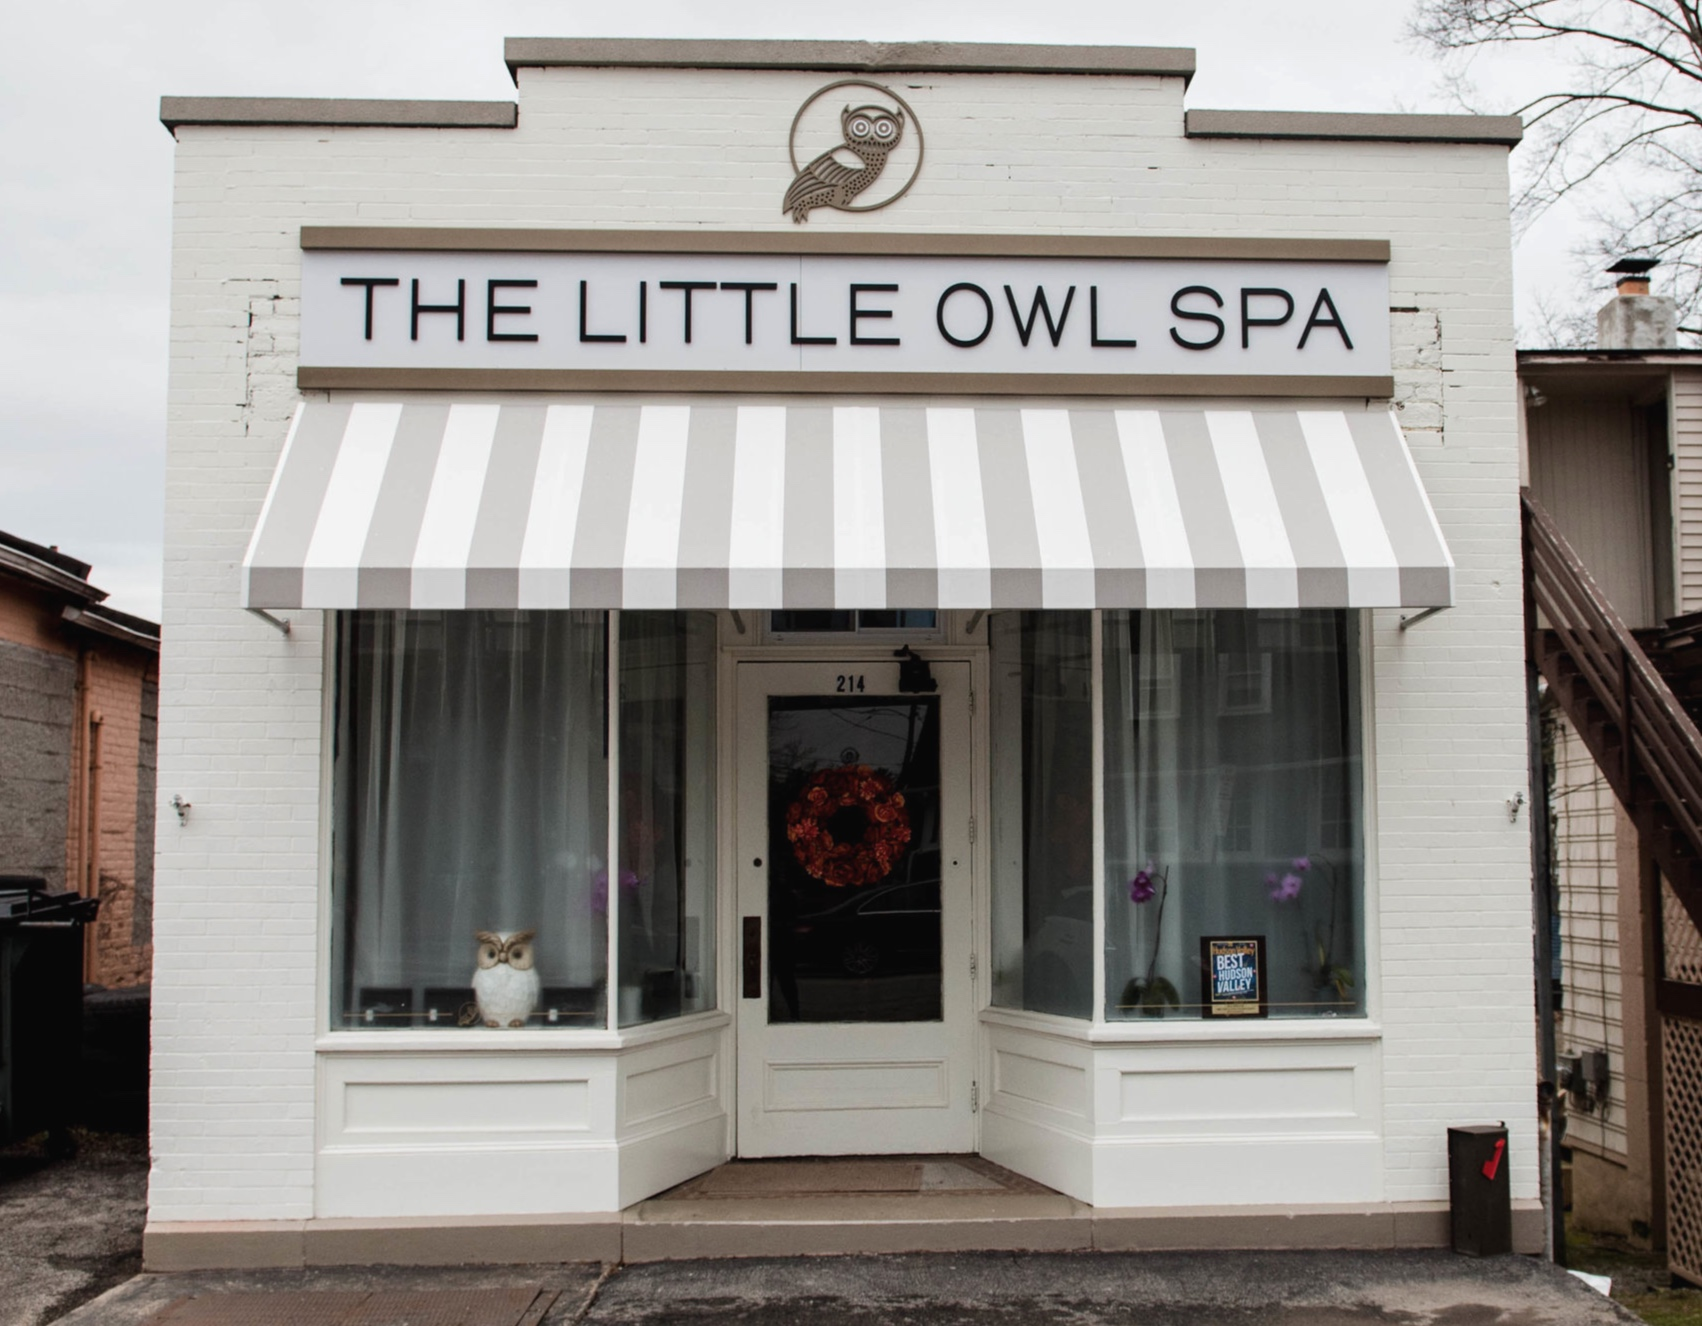 The Little Owl Spa - LOCATIONWe are located at 214 Hooker Ave. in Poughkeepsie, NY. If you are heading east on Hooker Ave, we are on the right side next to an auto body shop called Doc Noc. Our building is white and we have a gray and white awning with the emblem of the little owl above. You can't miss us!